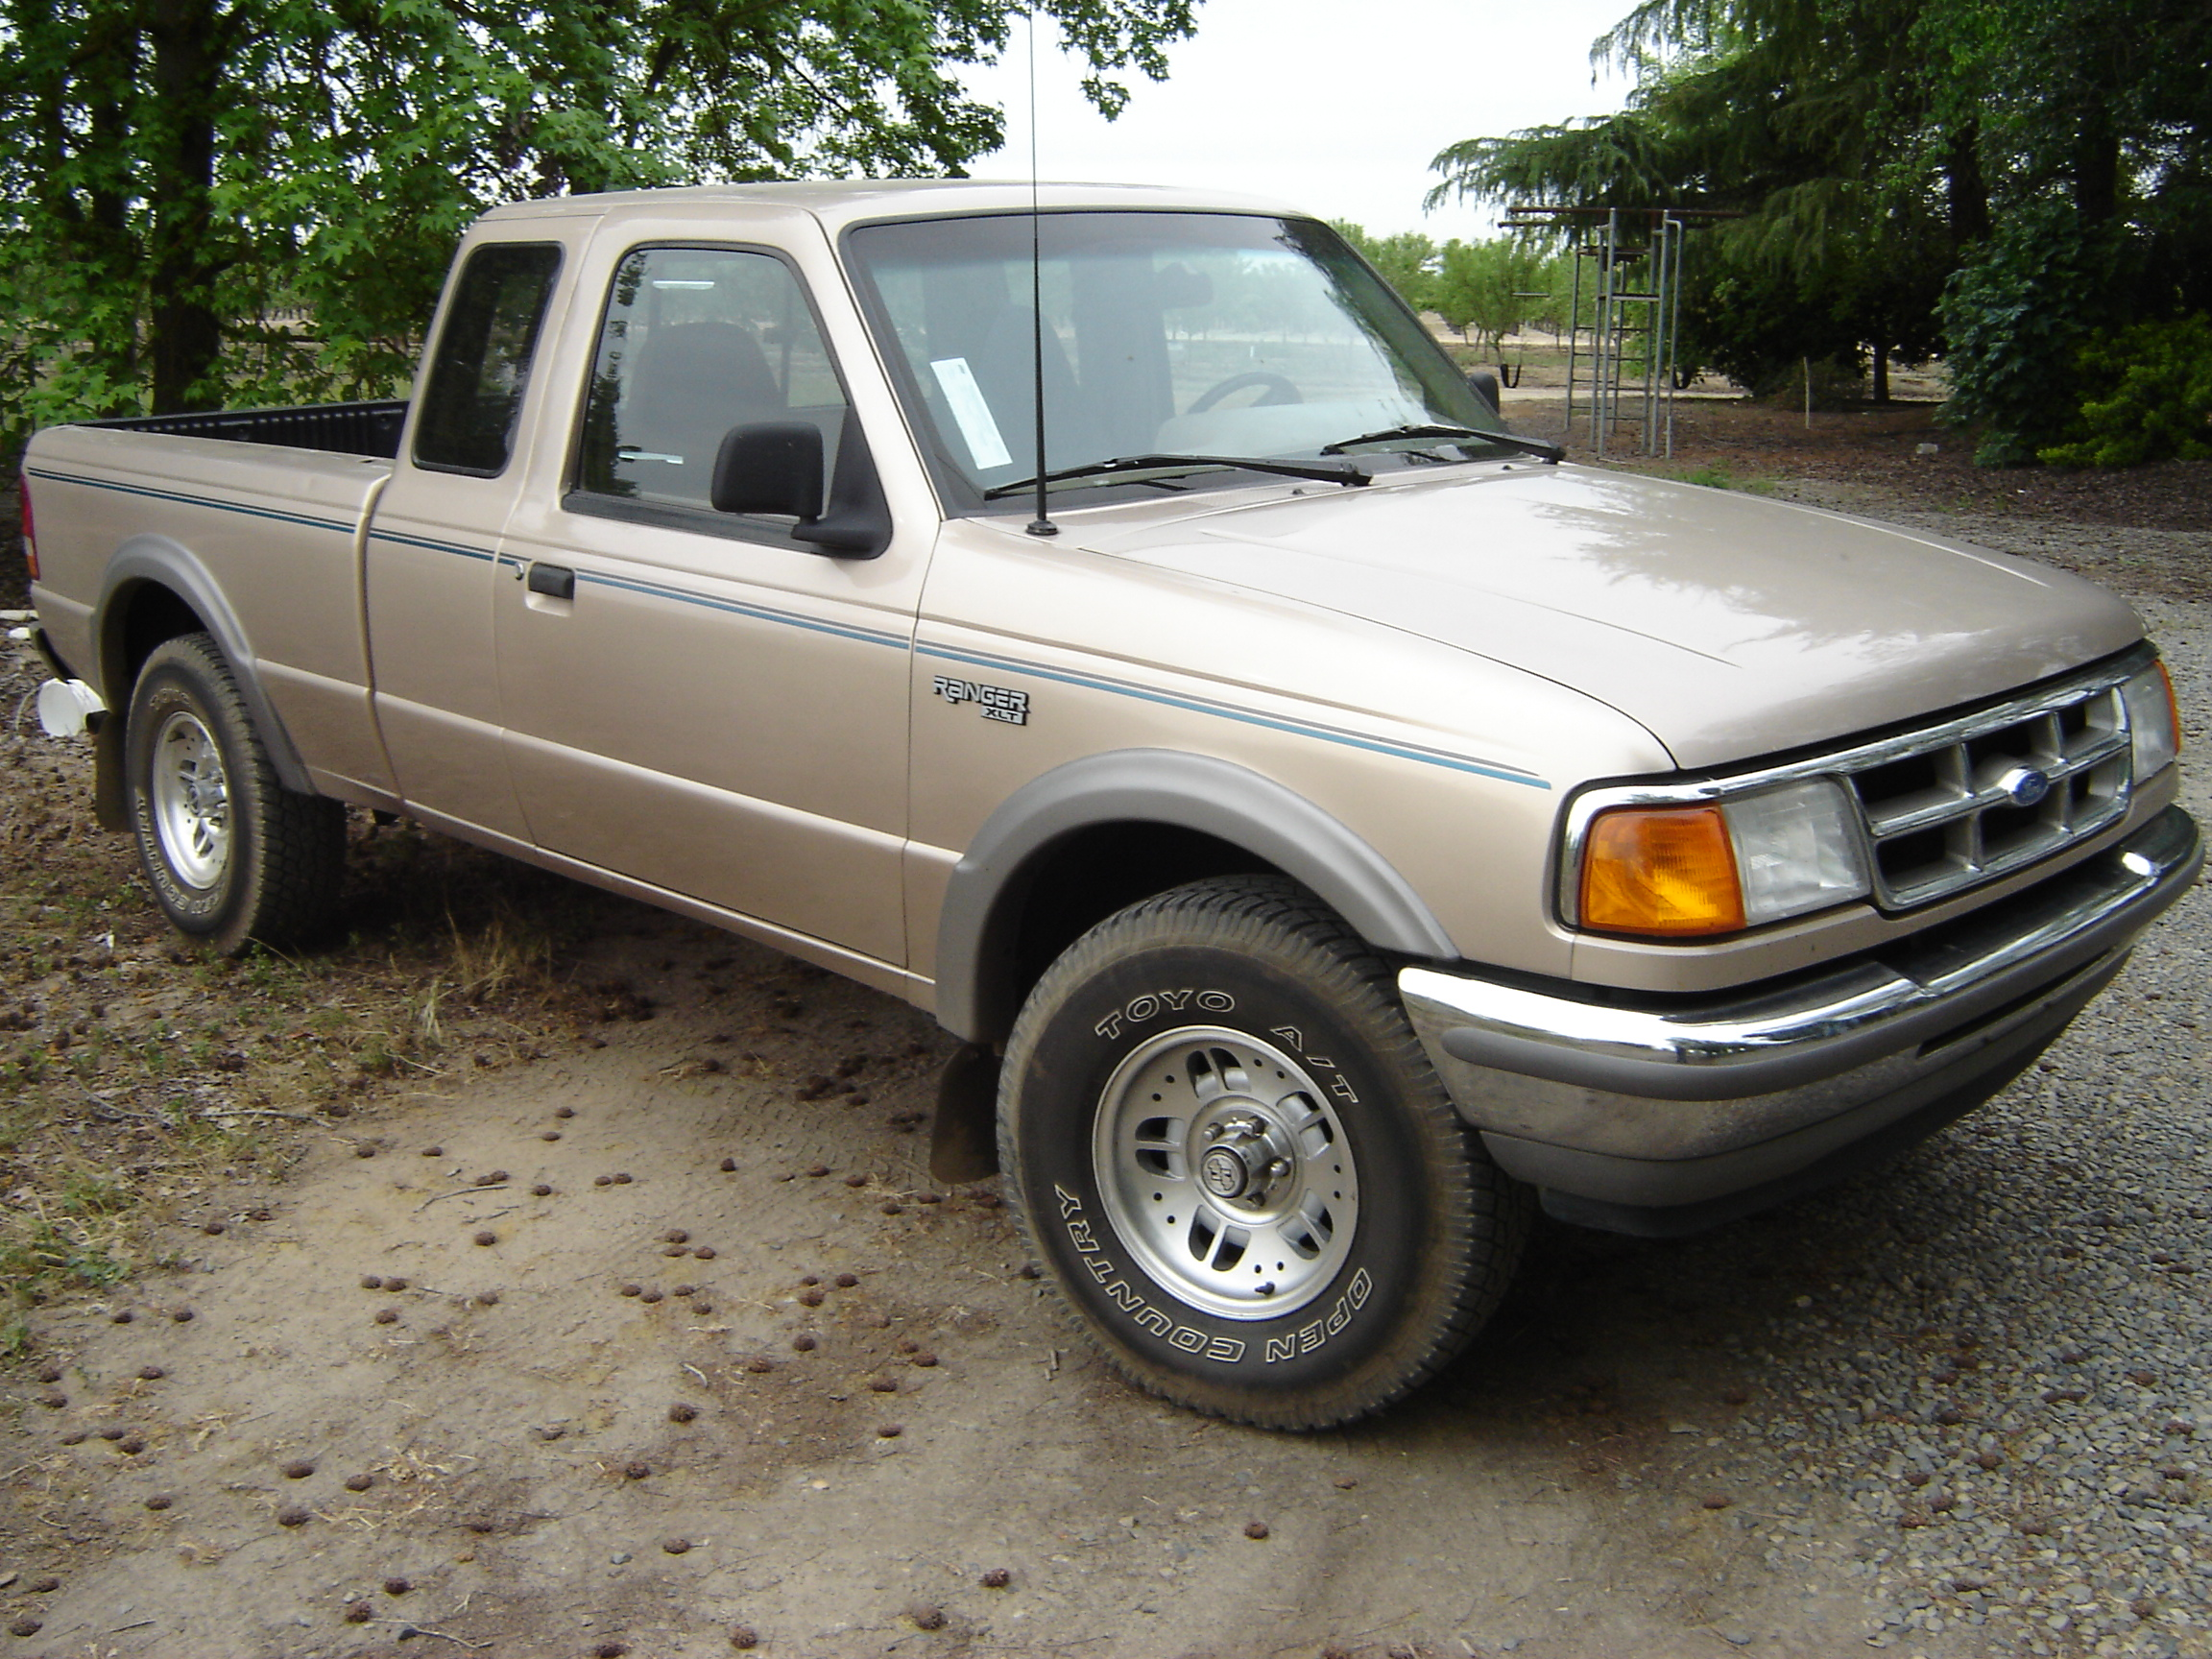 Ford Ranger (North America) - Tractor & Construction Plant Wiki - The ...